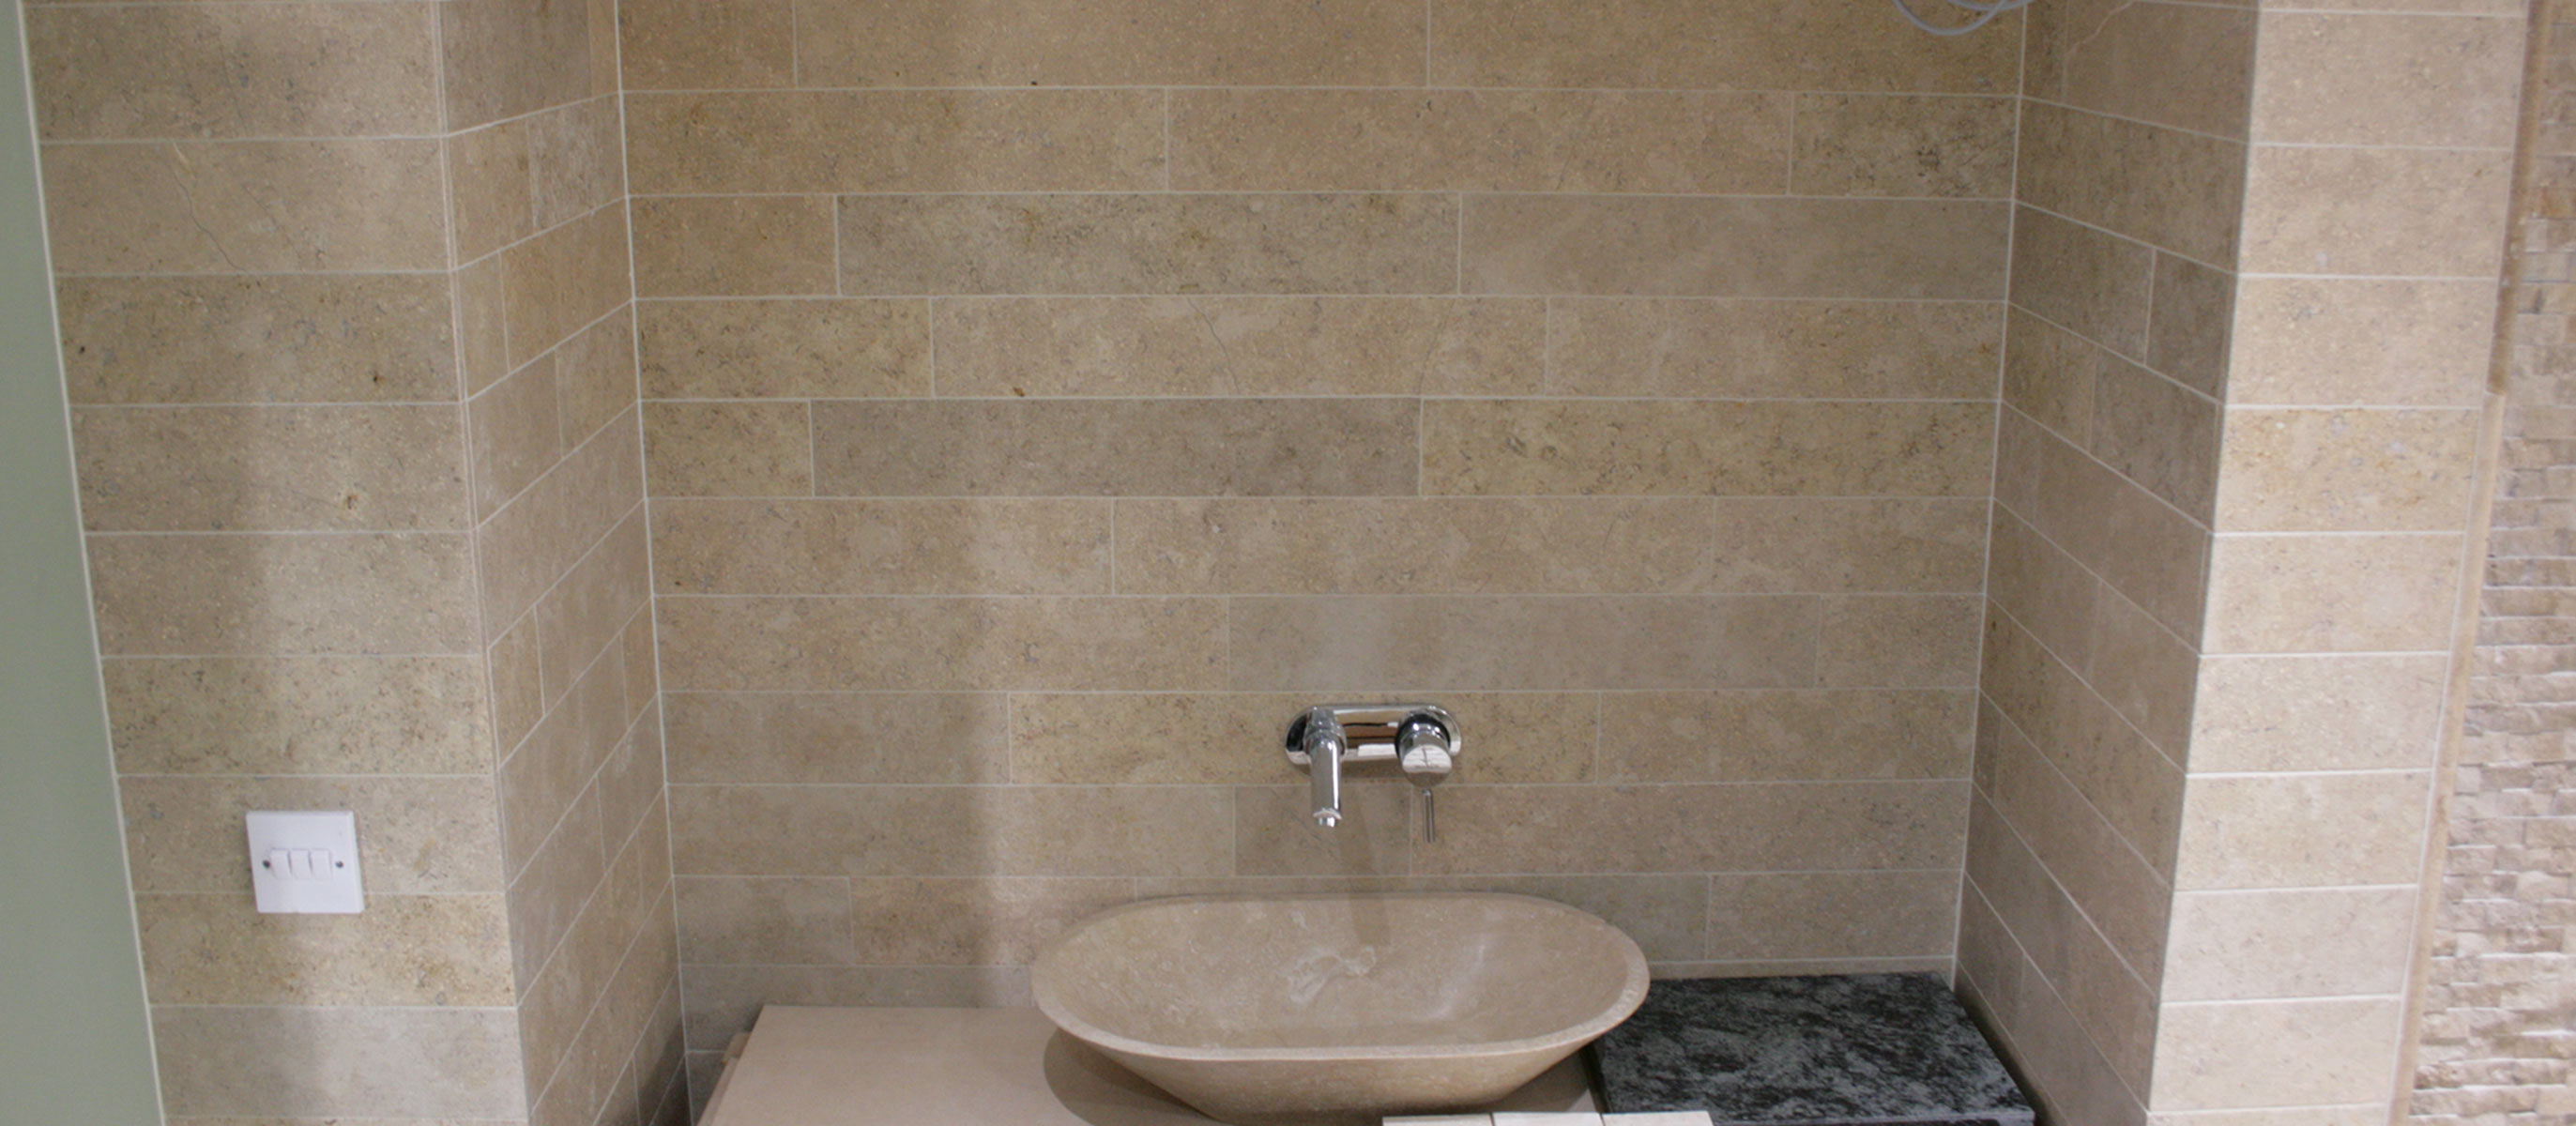 39 Cool Pictures And Ideas Of Limestone Bathroom Tiles 2019